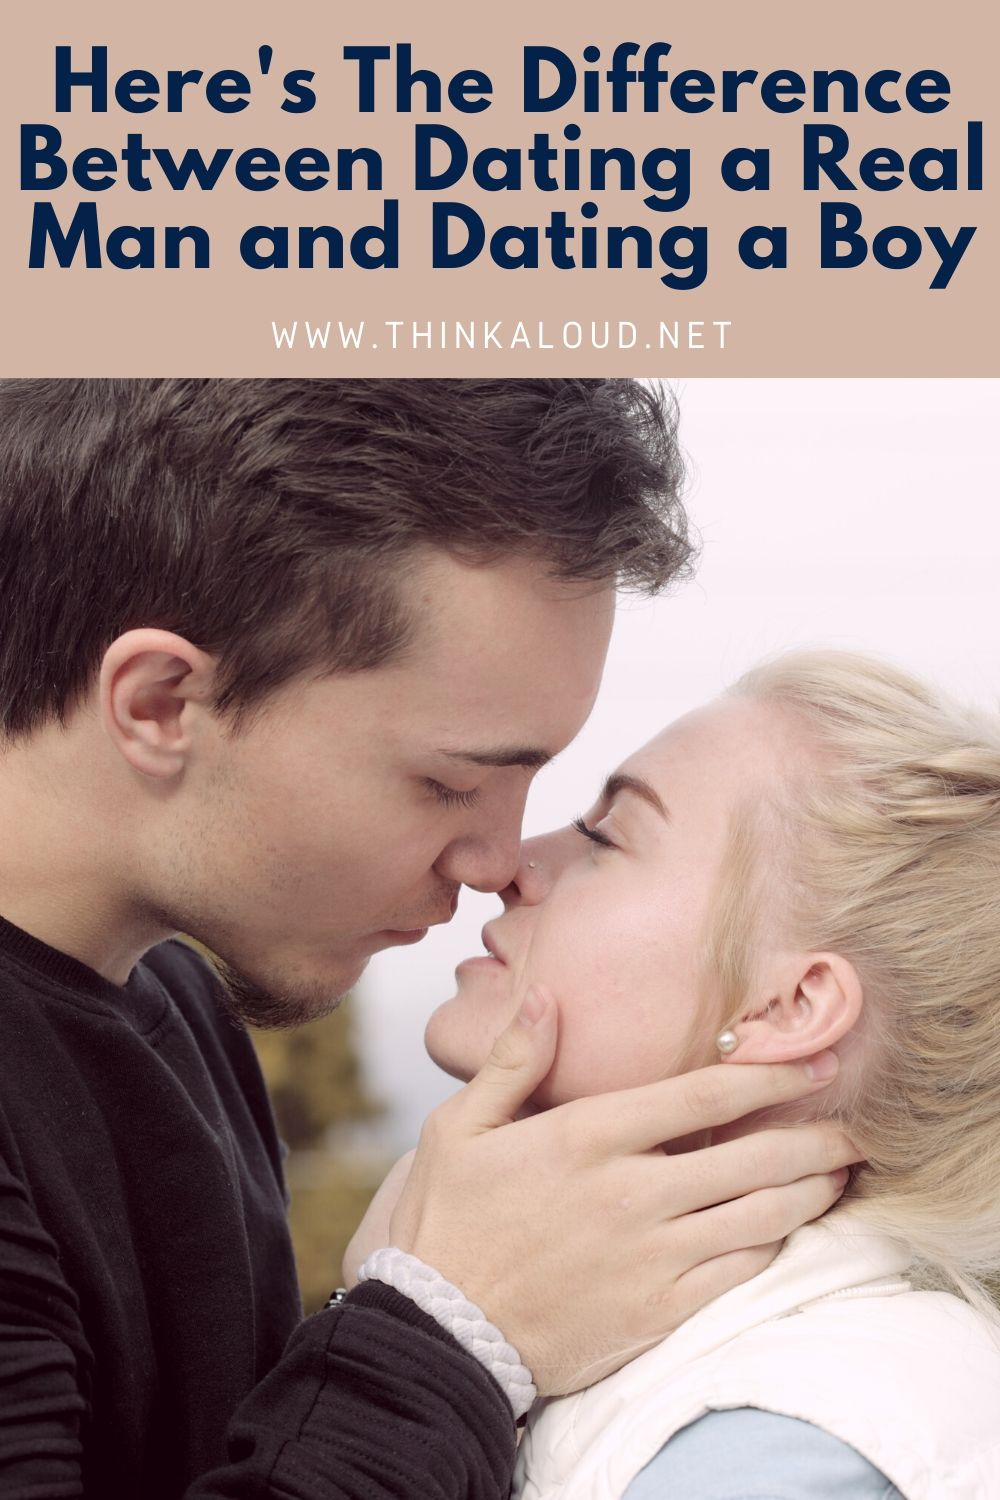 Here's The Difference Between Dating a Real Man and Dating a Boy